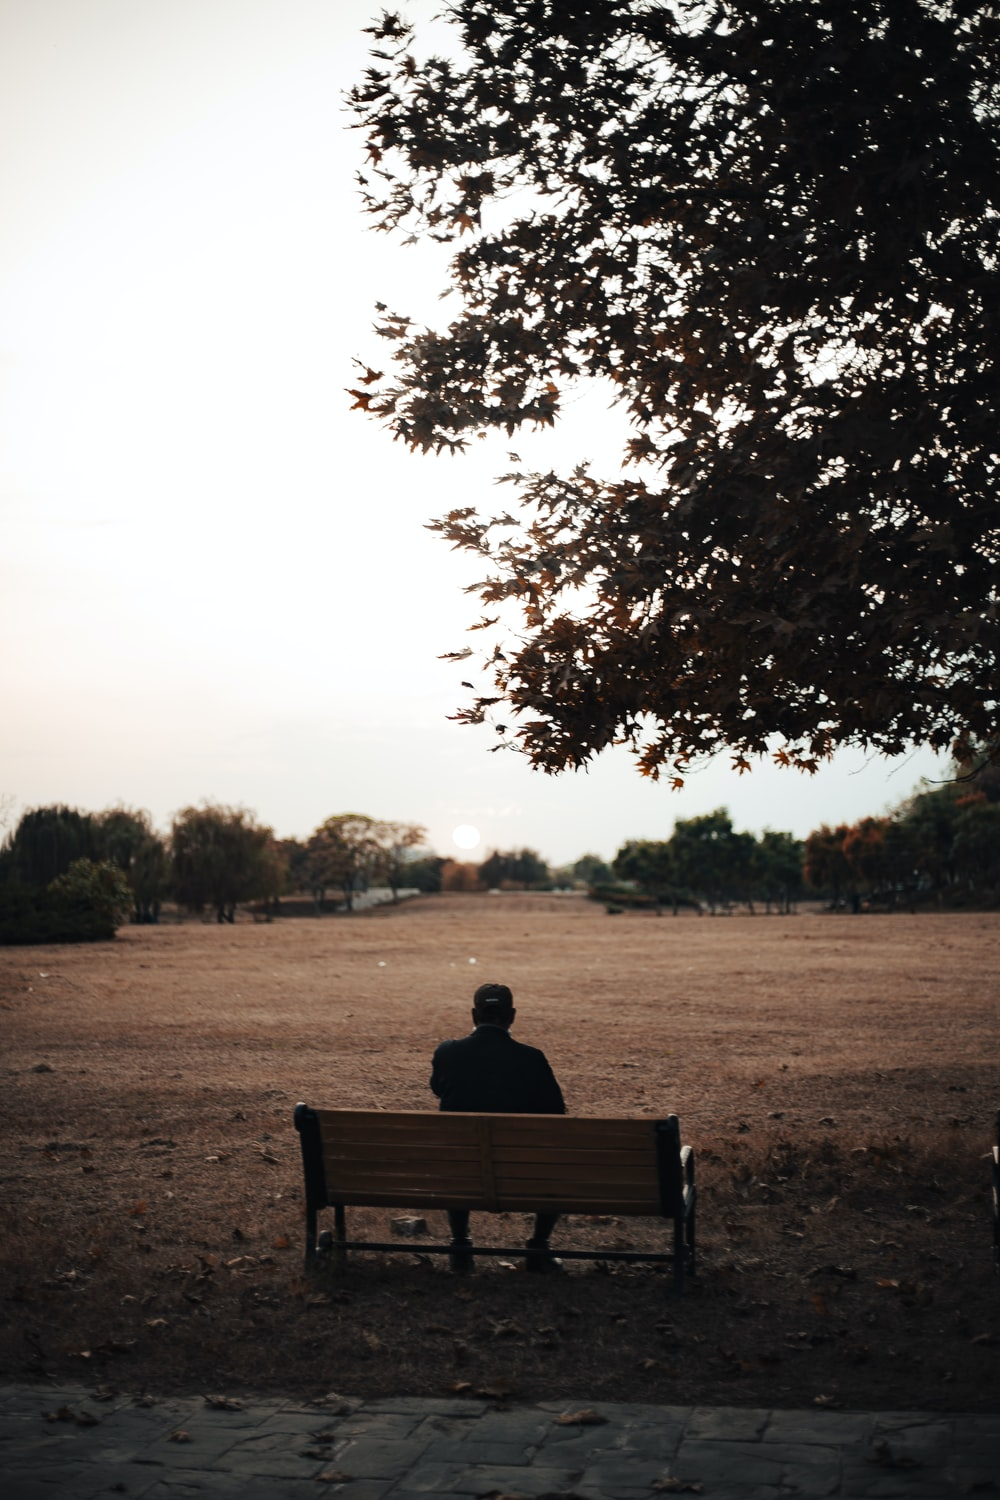 person sitting on brown wooden bench during daytime